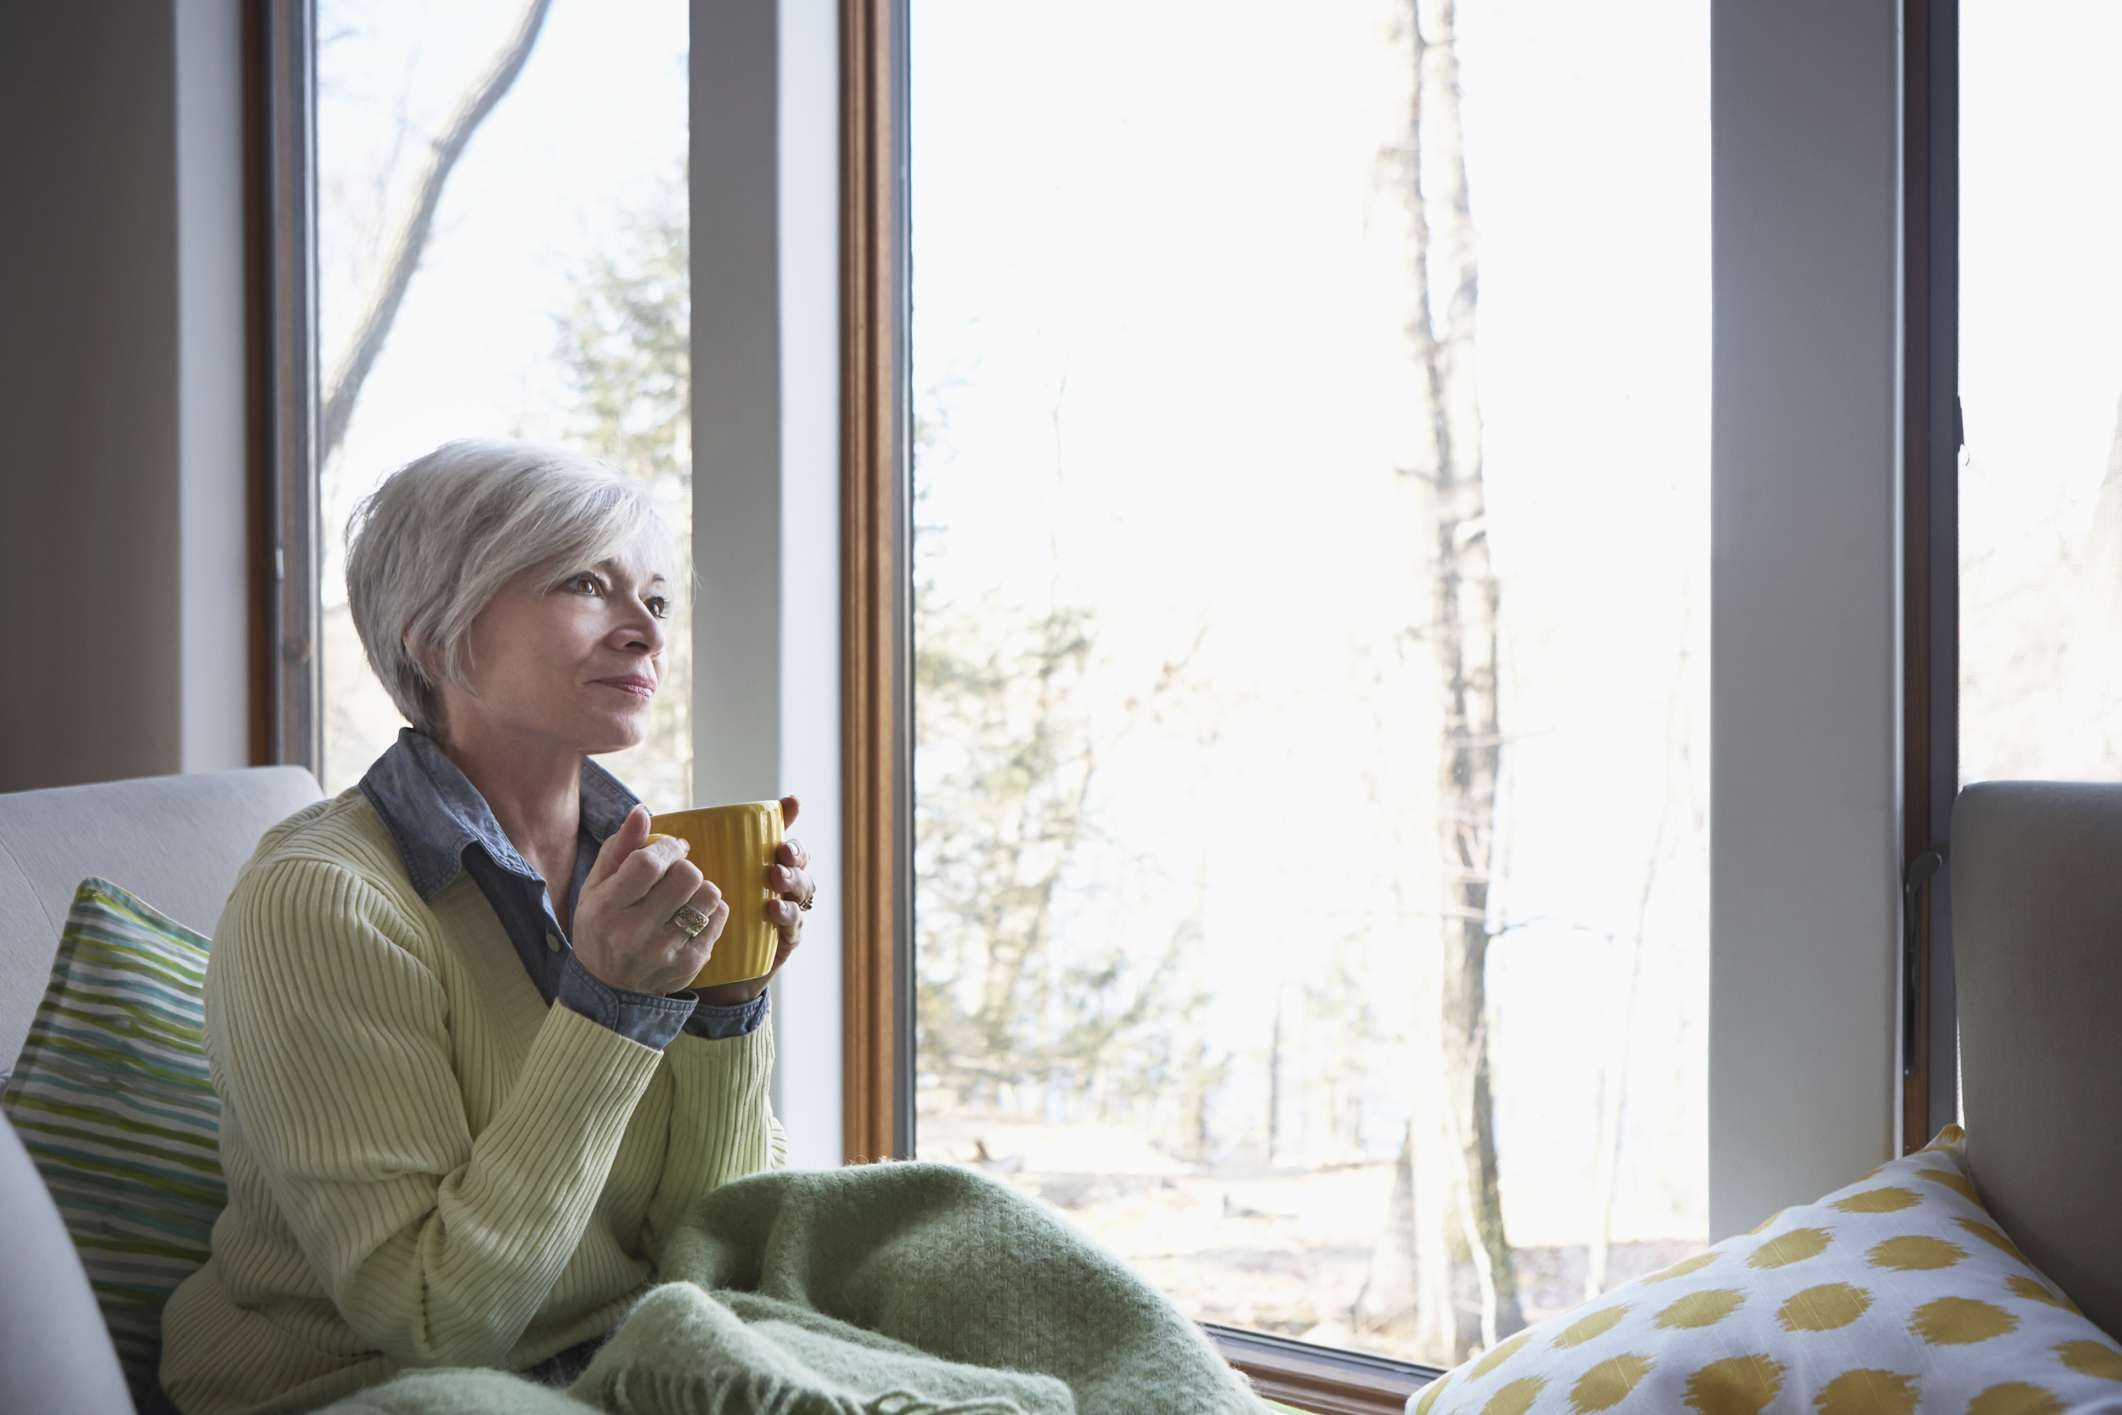 Older adult looking out of a large window while holding a mug